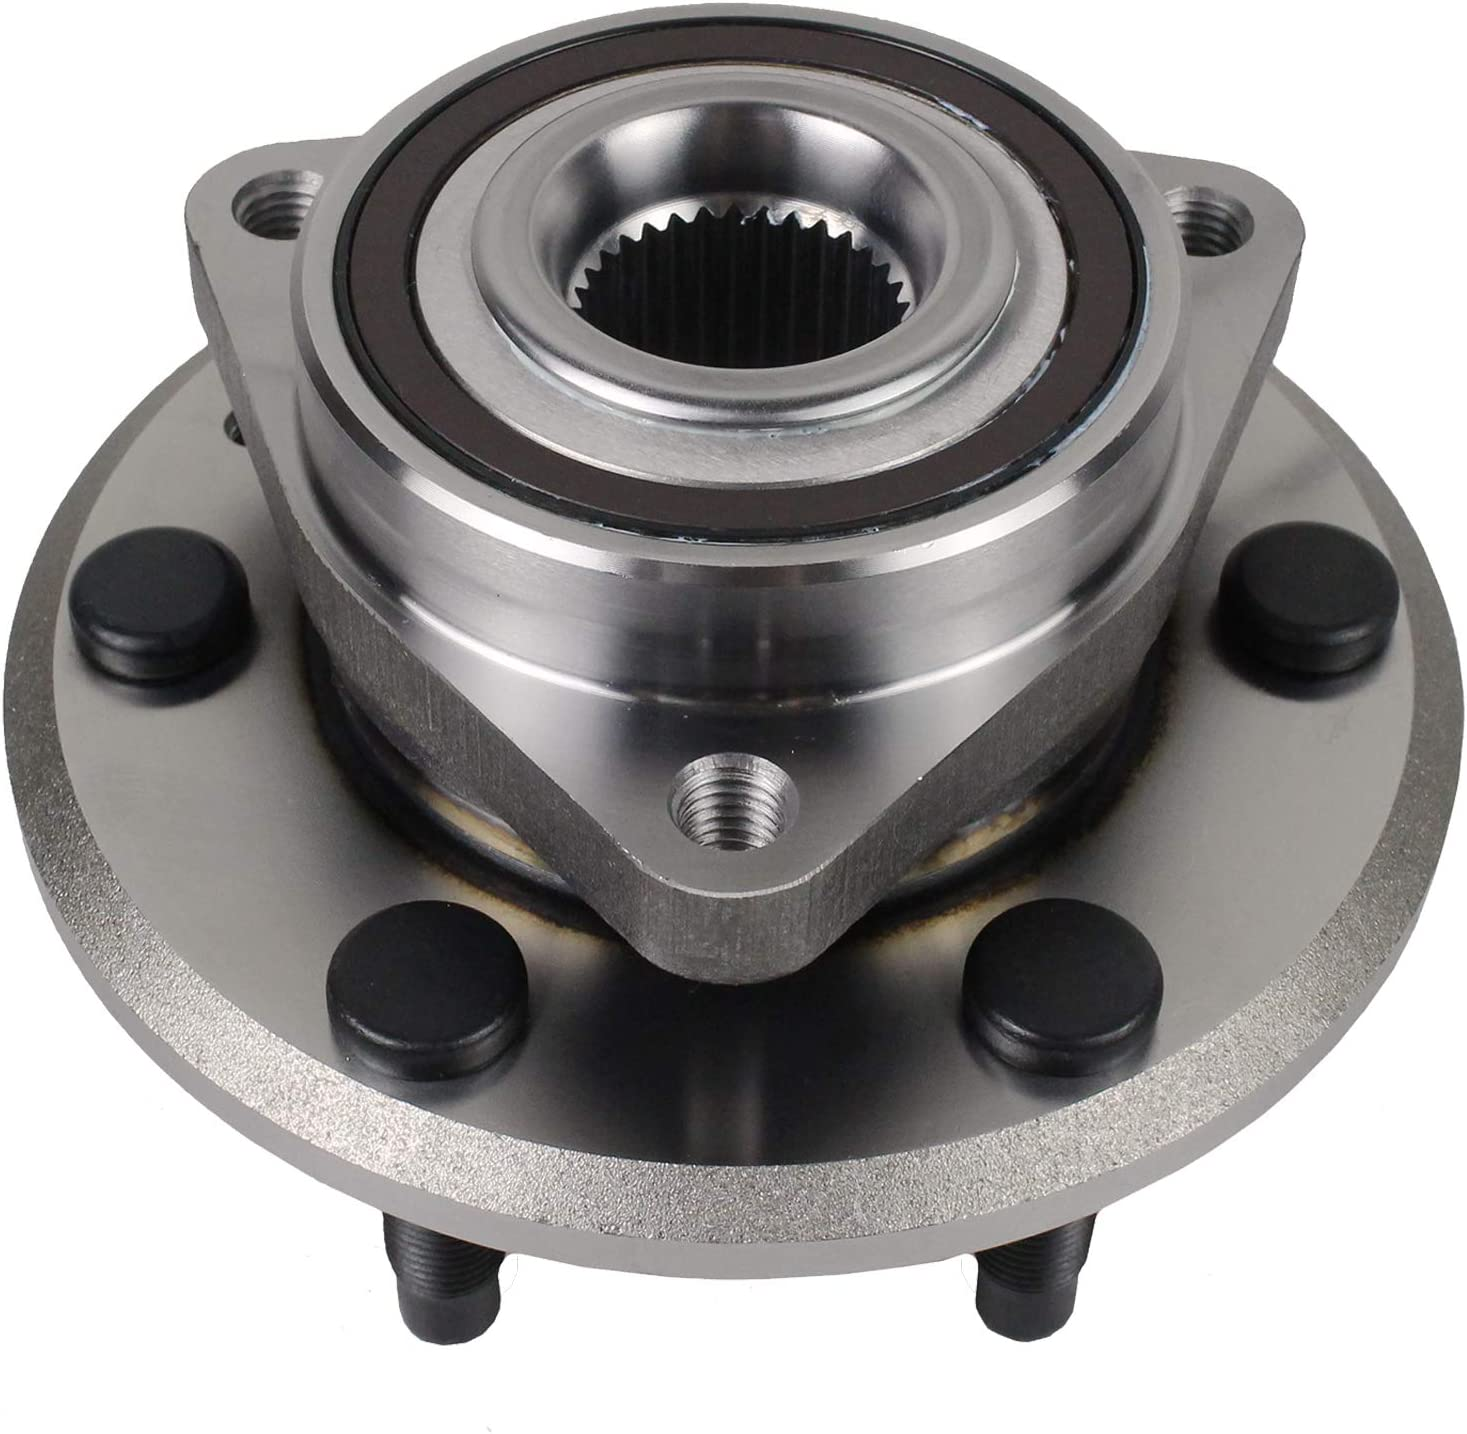 Autoround 70% OFF Outlet Wheel Hub and Bearing Assembly En for Buick Fit 513277 Reservation